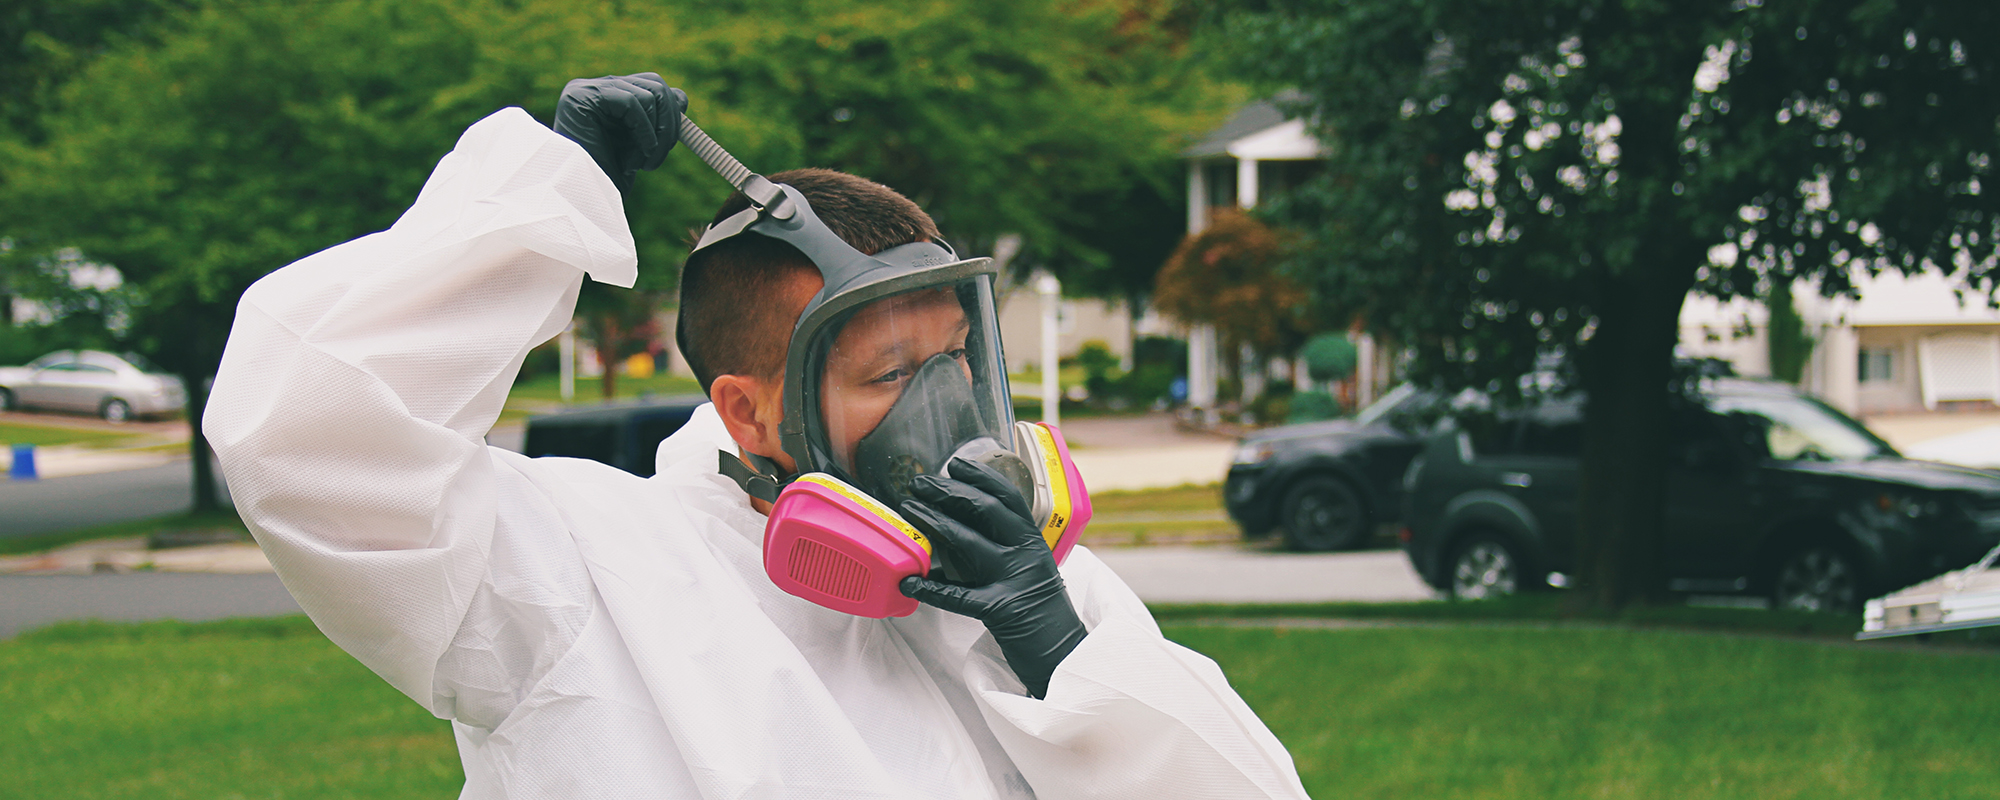 mold-remediation-wrightstown-nj-08041